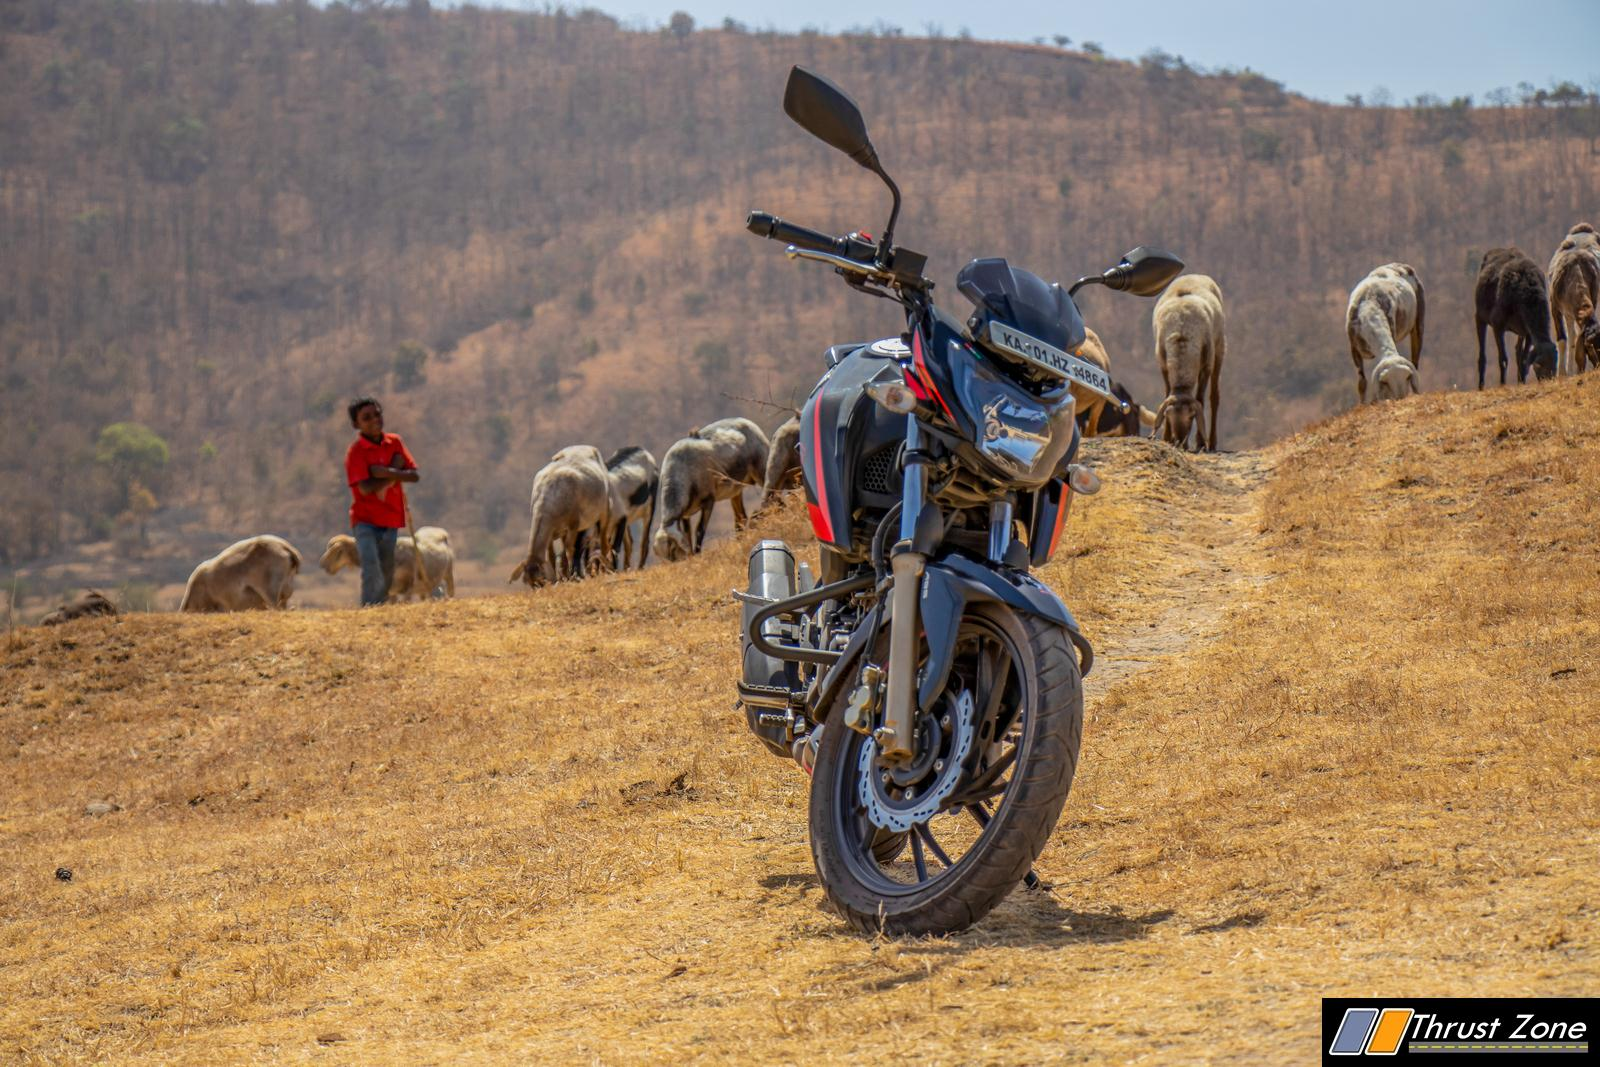 2019-Apache-RTR-200-Race-Edition-Review-1